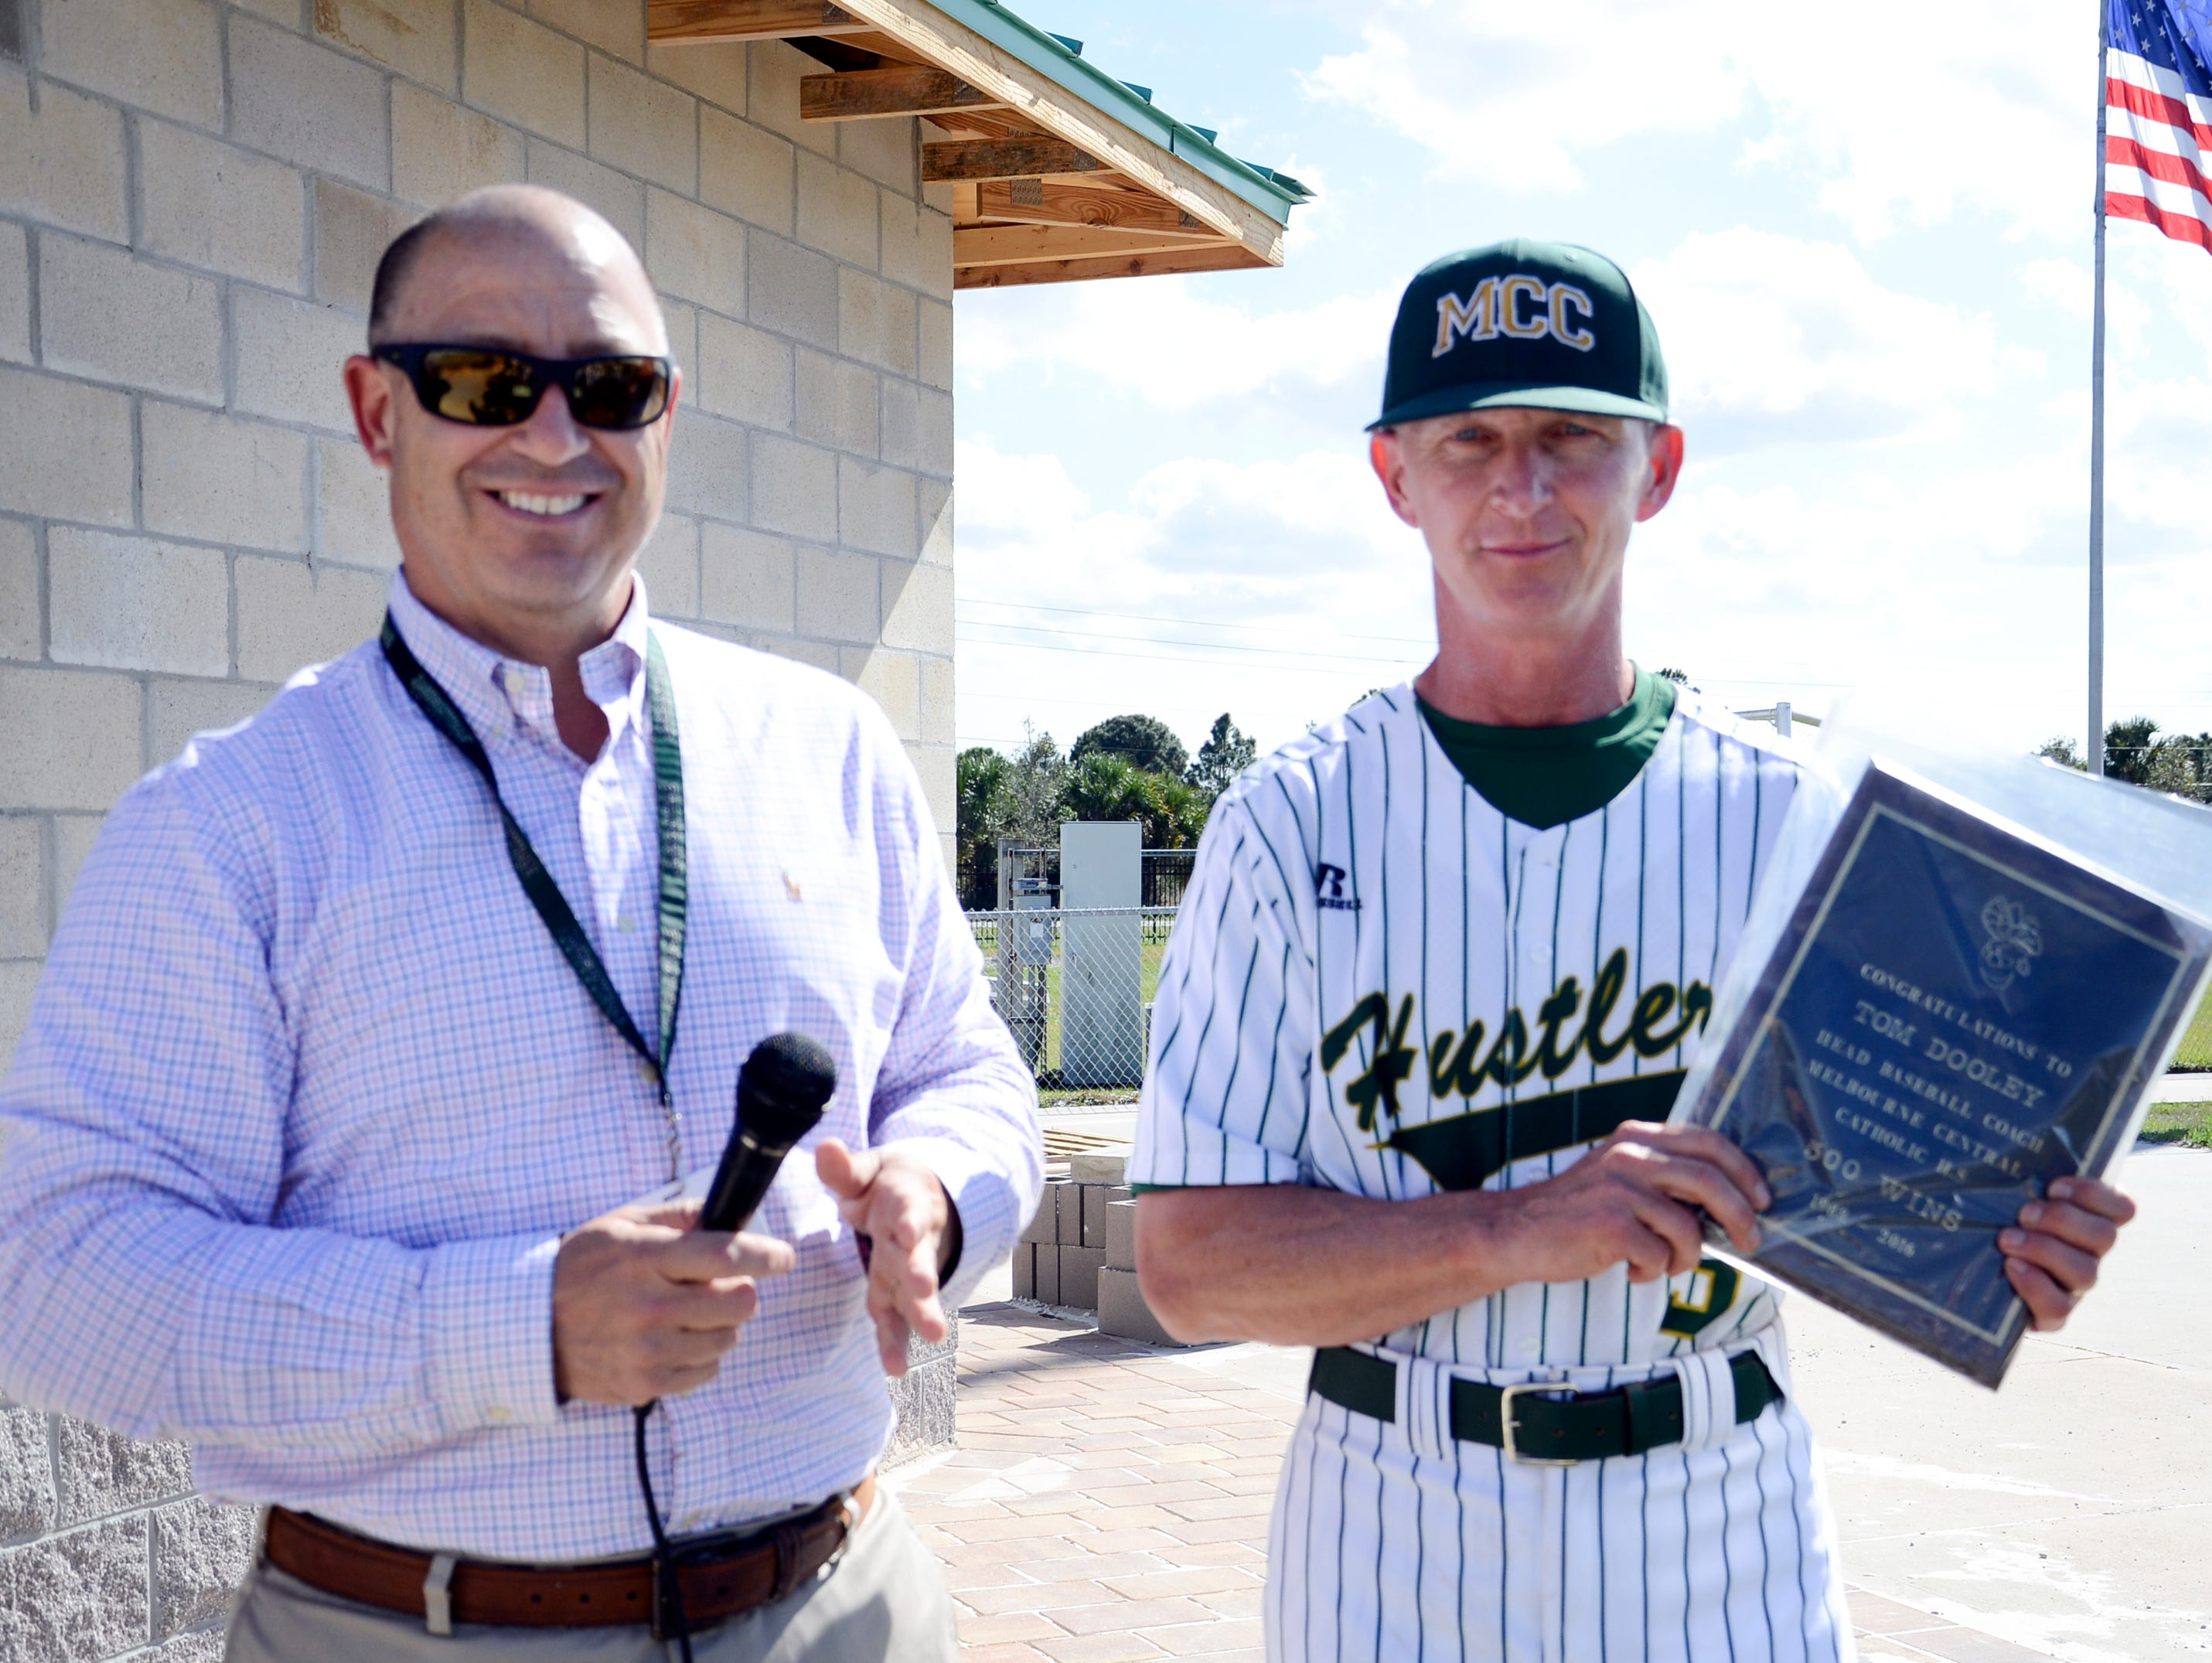 MCC athletic director Mike Riazzi and baseball coach Tom Dooley during Tuesday's game in Melbourne. Dooley was honored for winning his 500th game last week.